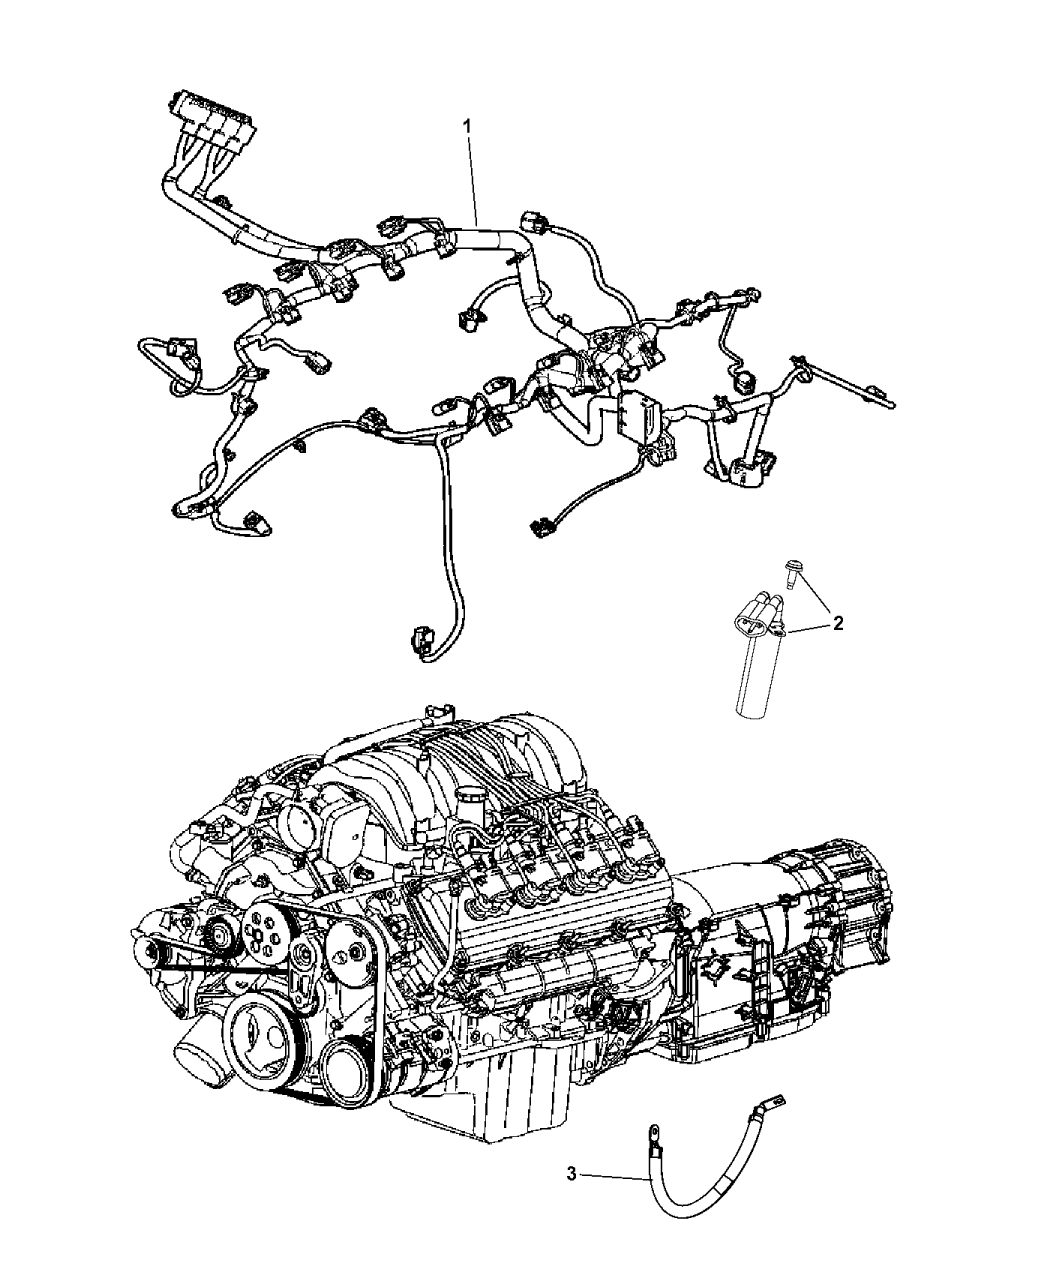 jeep grand cherokee engine wiring diagram 5035358ab genuine    jeep       wiring    injector  5035358ab genuine    jeep       wiring    injector